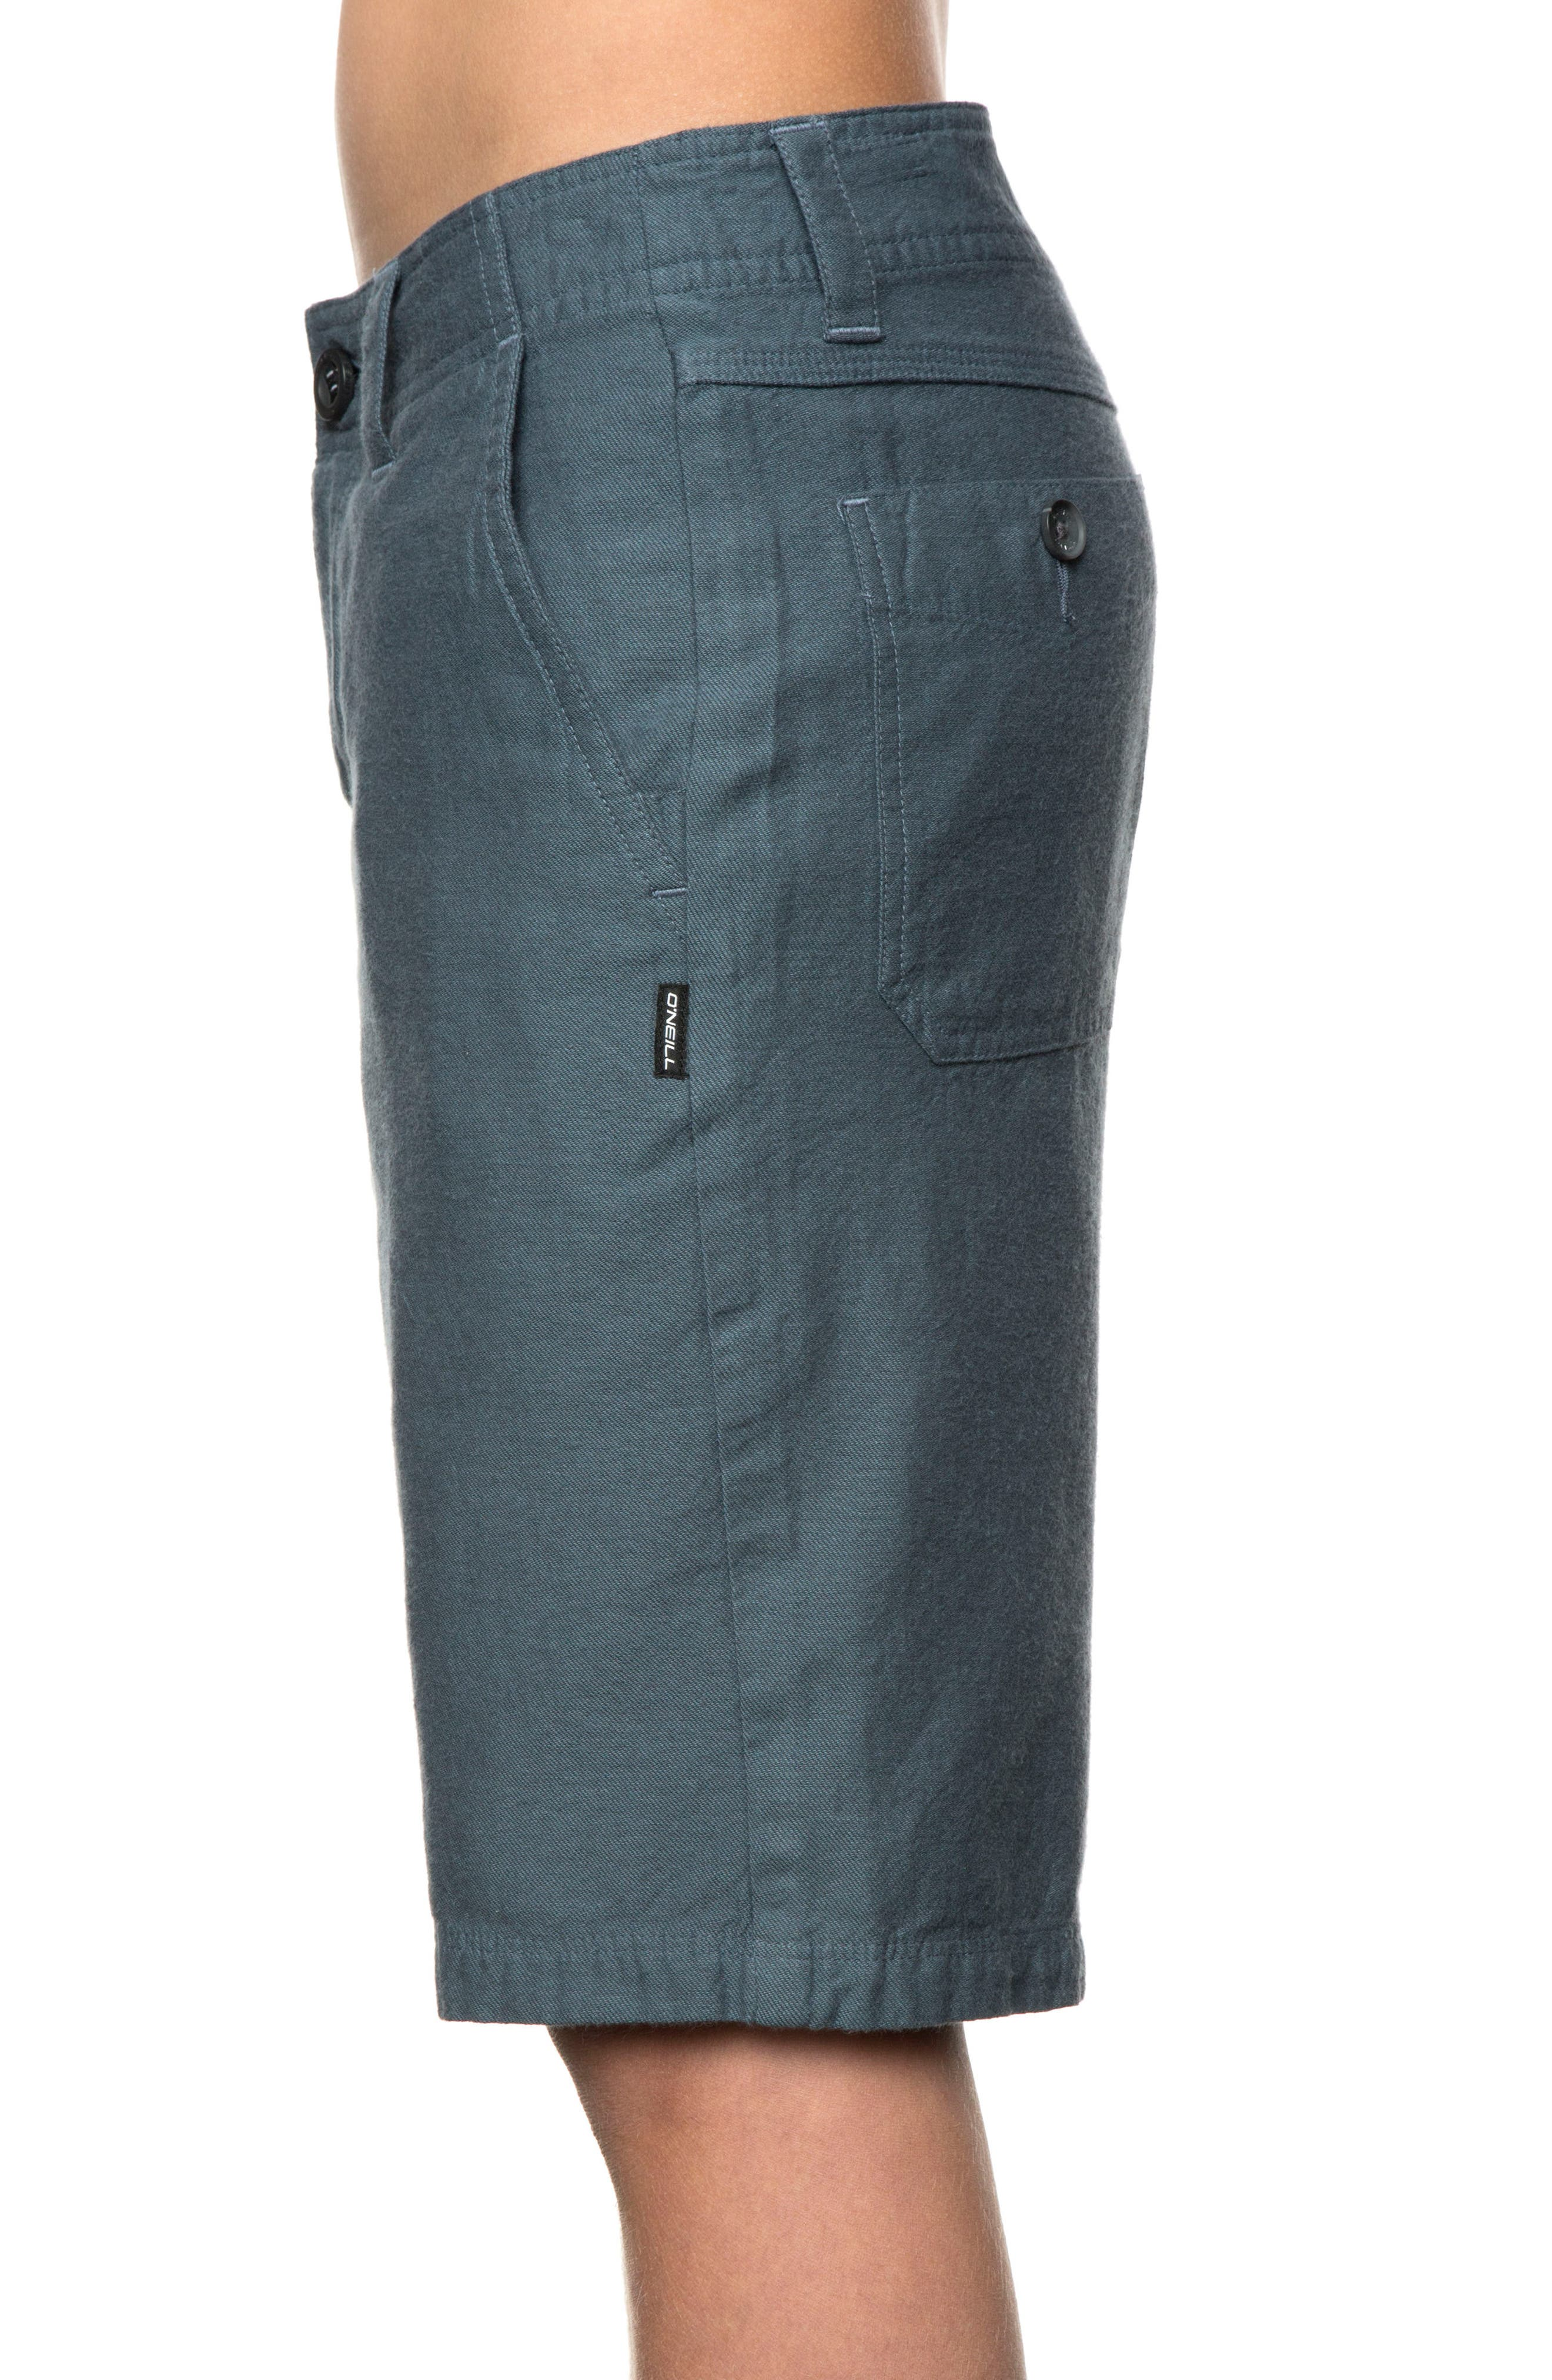 Scranton Chino Shorts,                             Alternate thumbnail 7, color,                             028